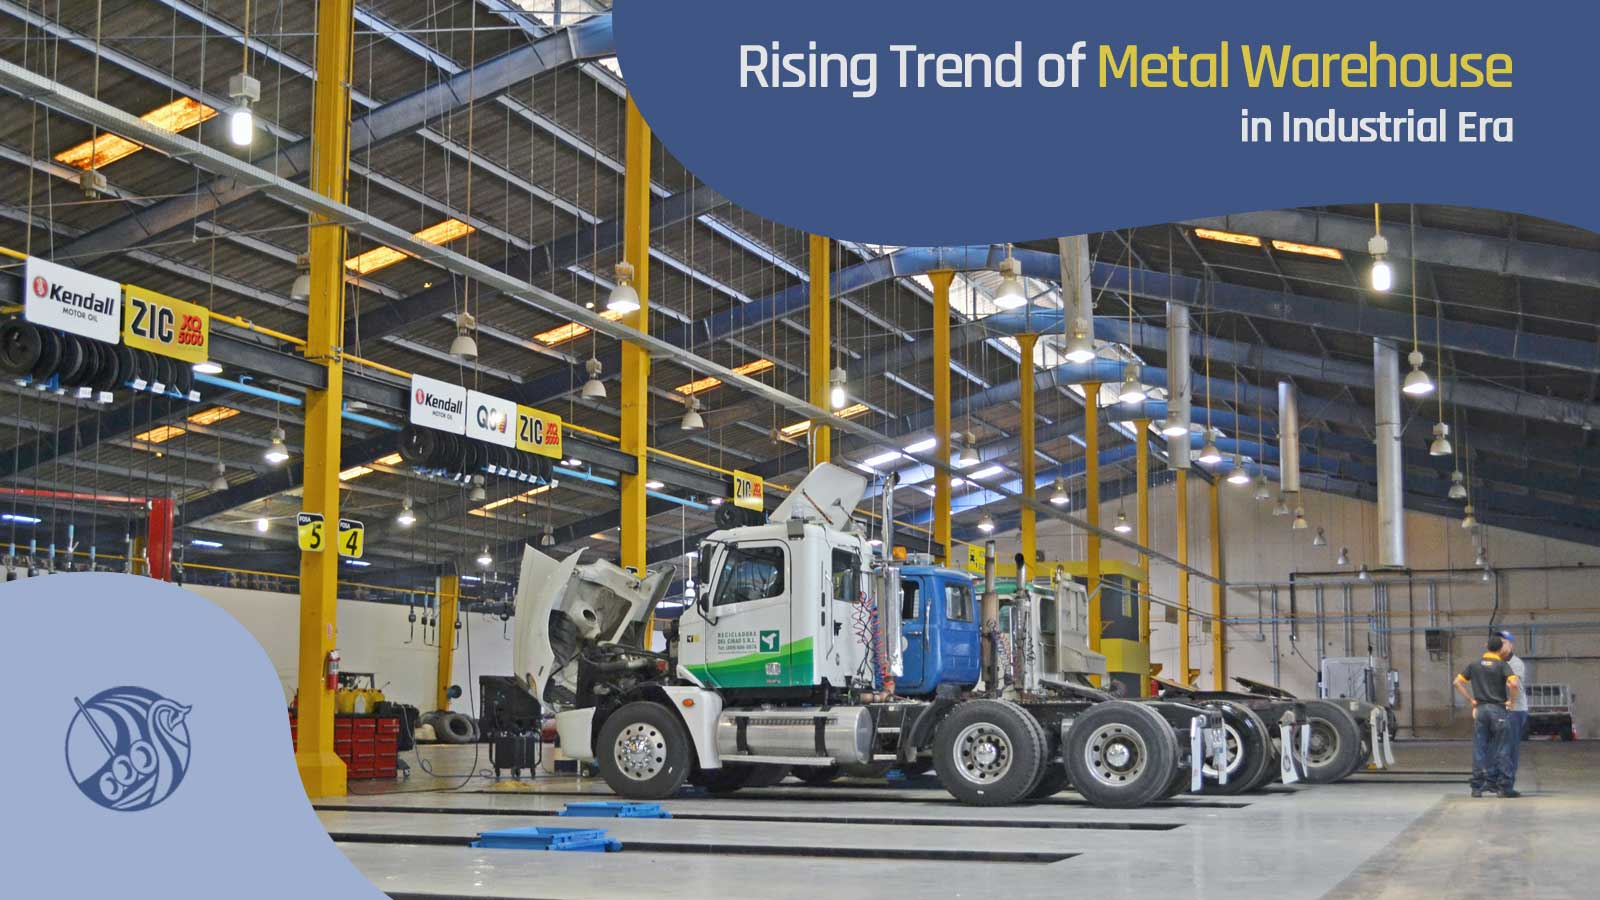 Rising Trend of Metal Warehouse in Industrial Era